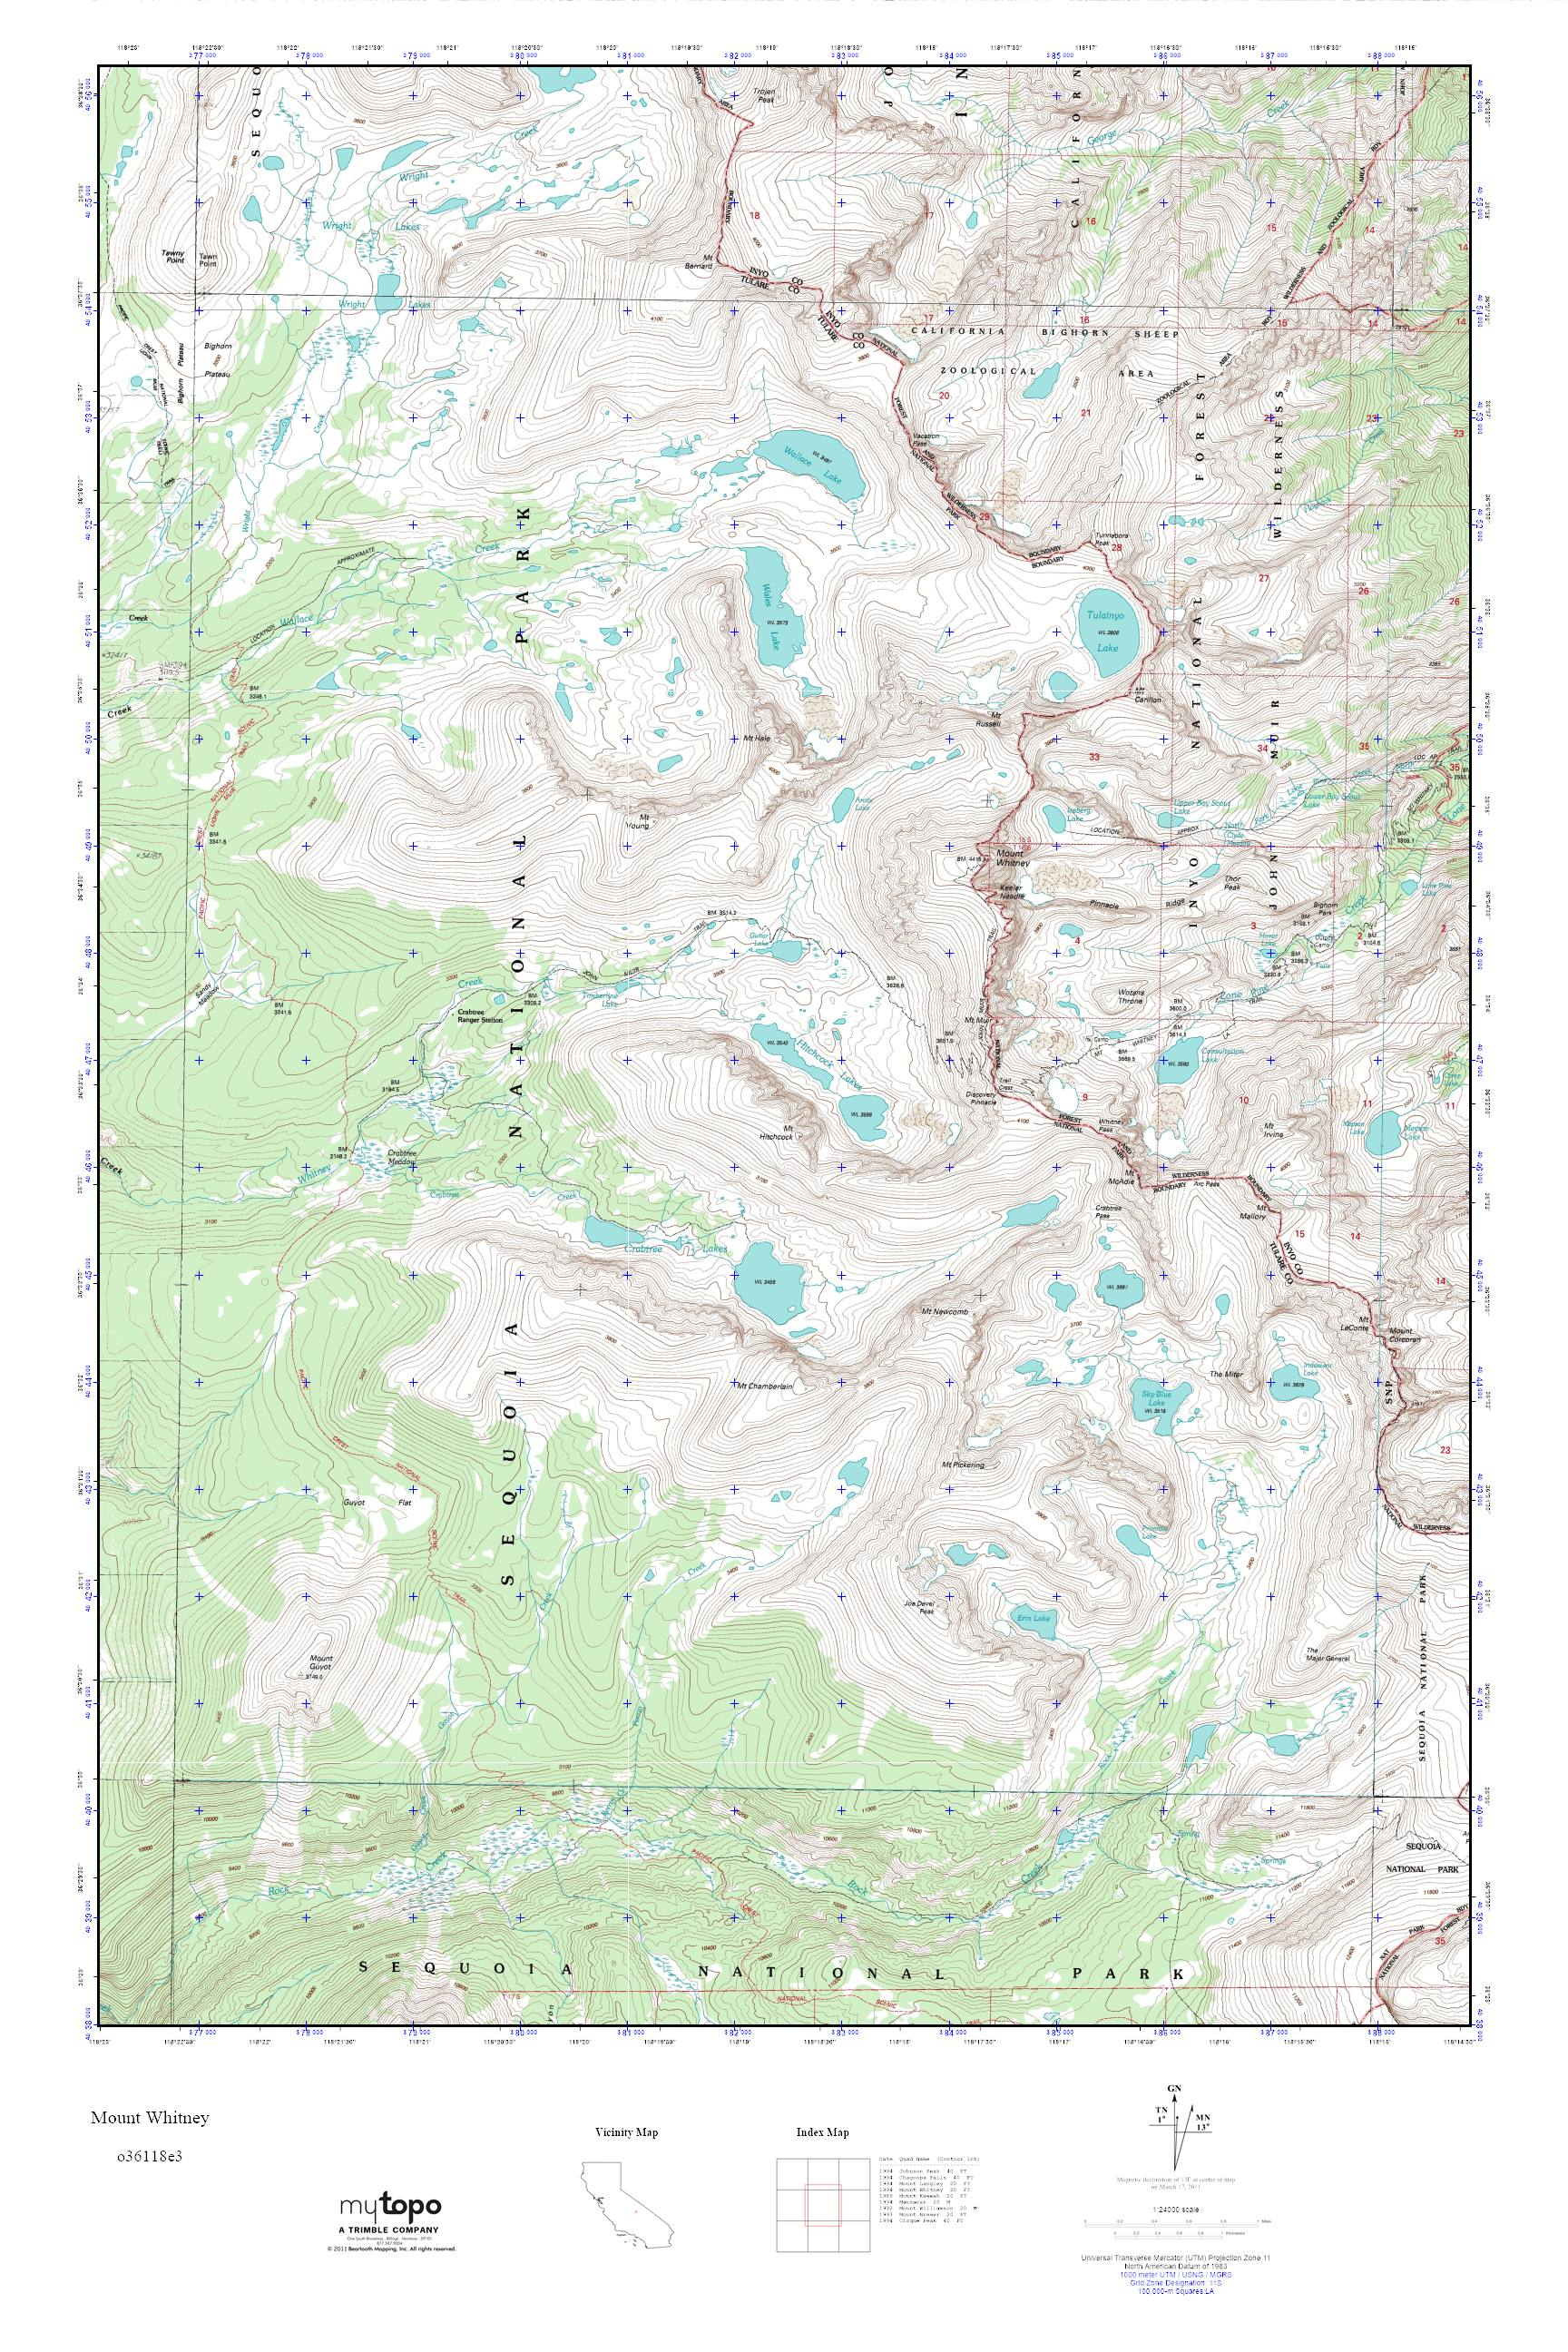 Where Is Mount Whitney On The California Map.Mytopo Mount Whitney California Usgs Quad Topo Map